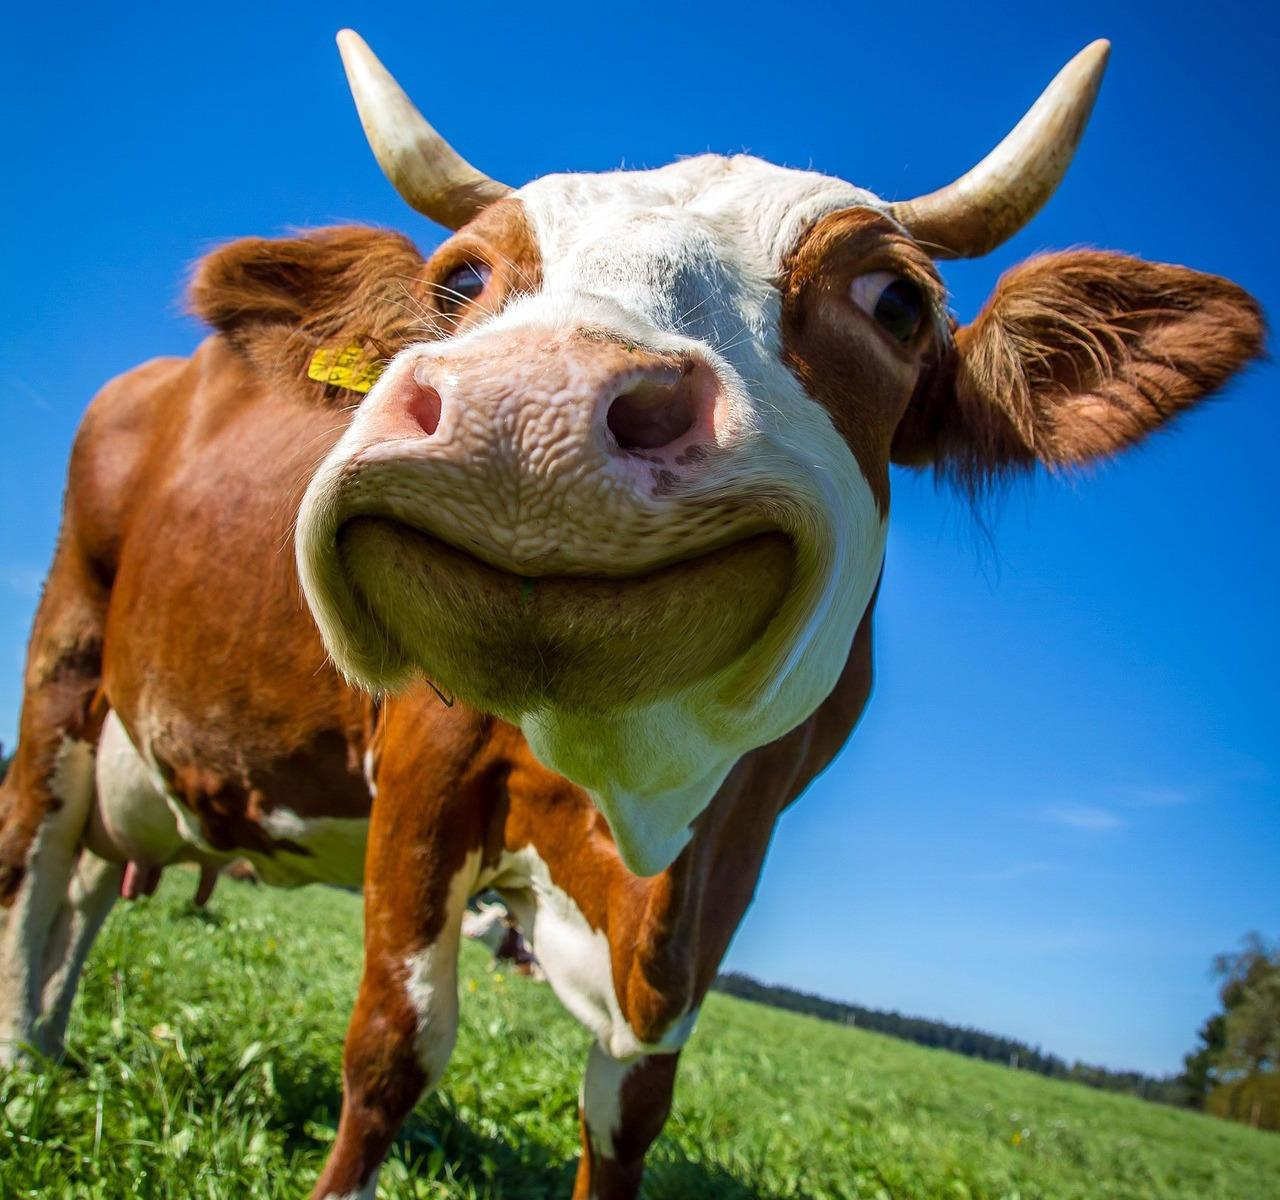 Close up image of a cow